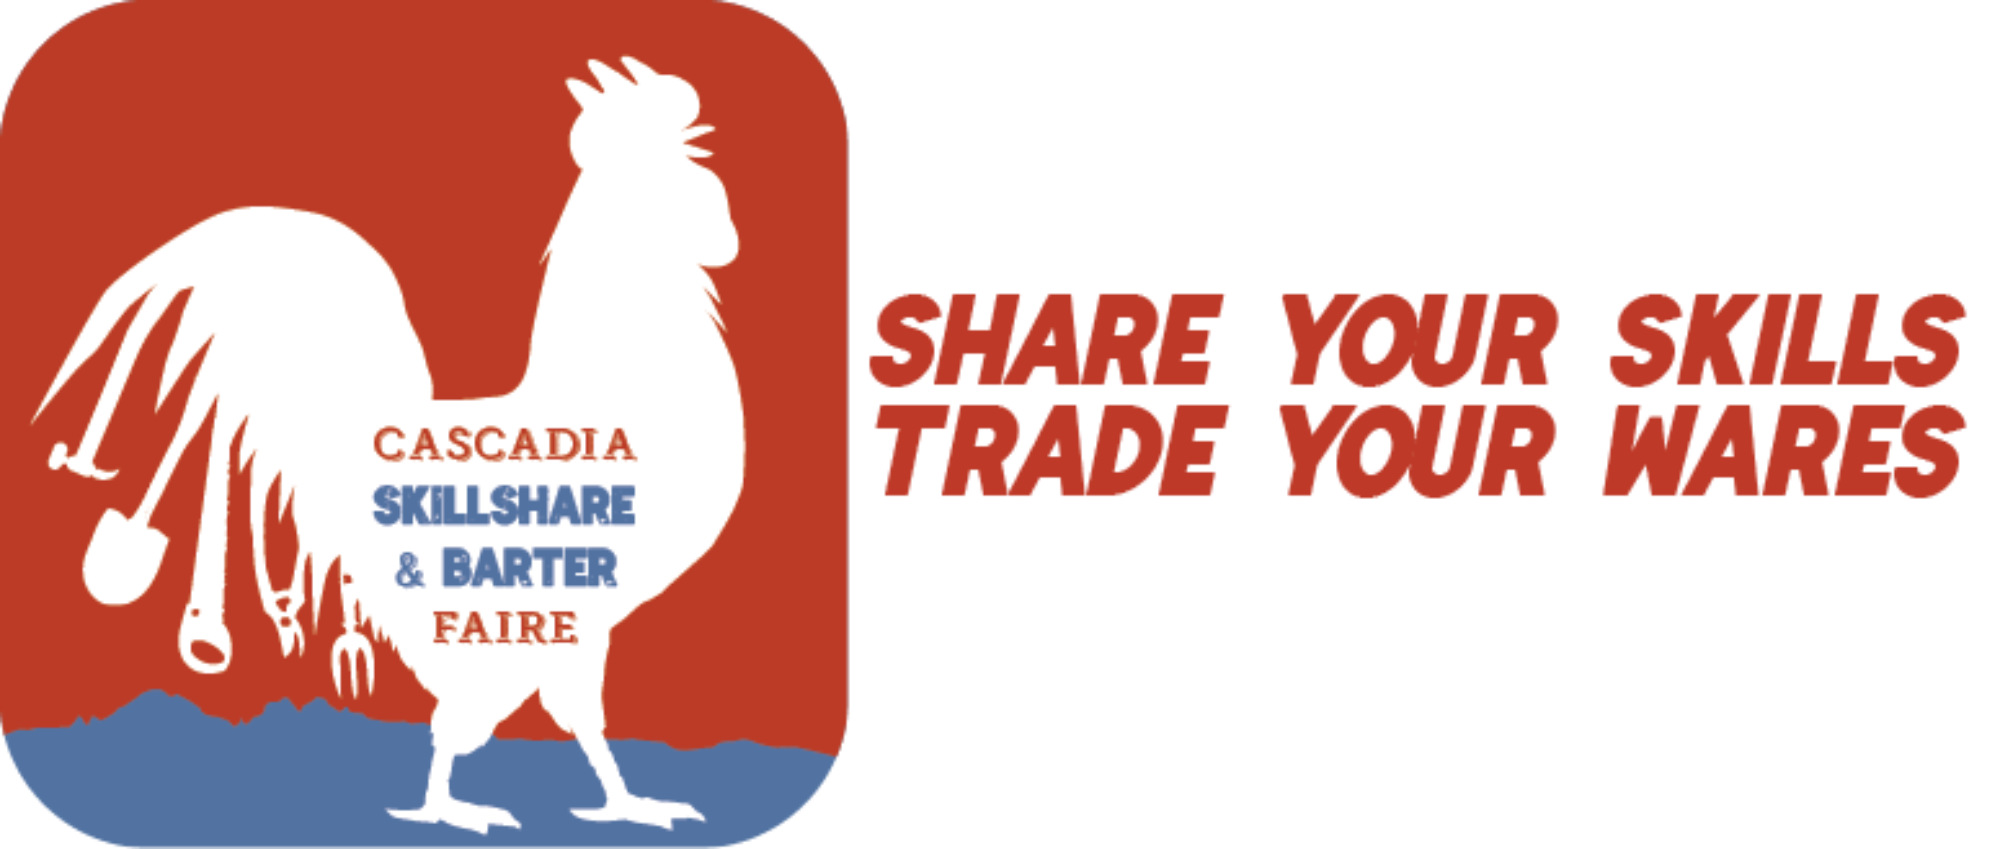 7th Annual Cascadia Skillshare & Barter Faire